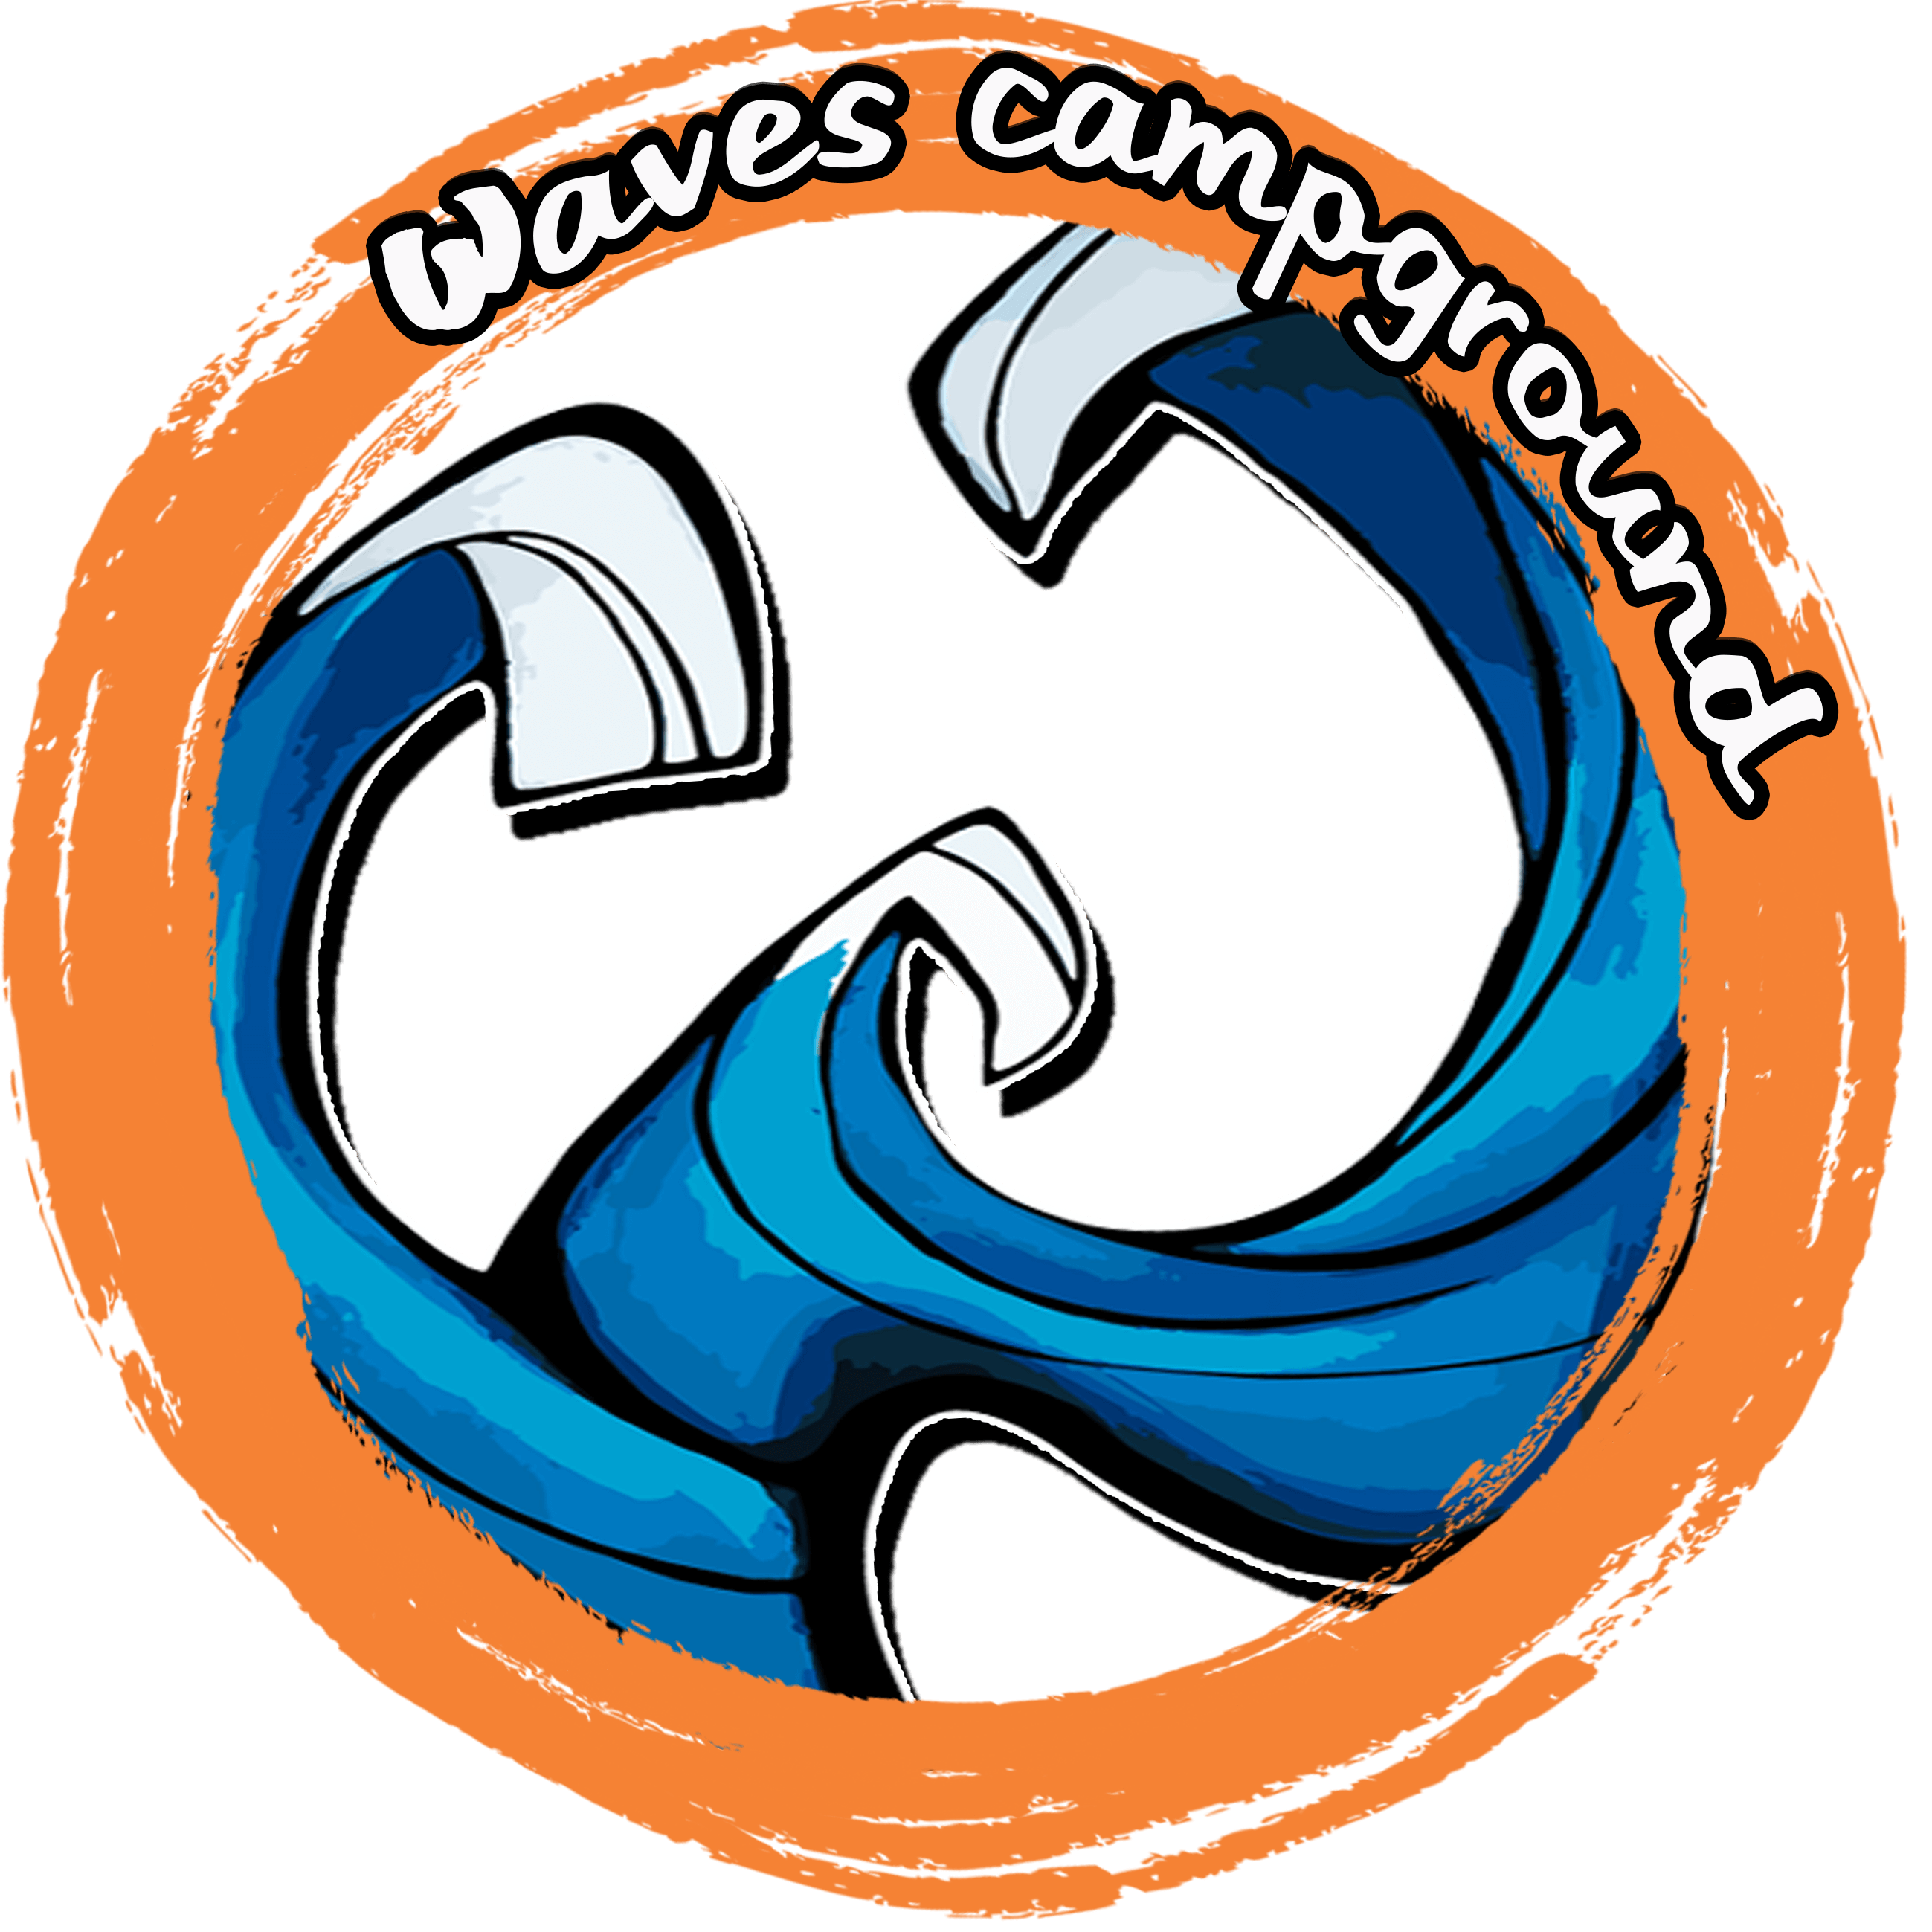 Waves Campground